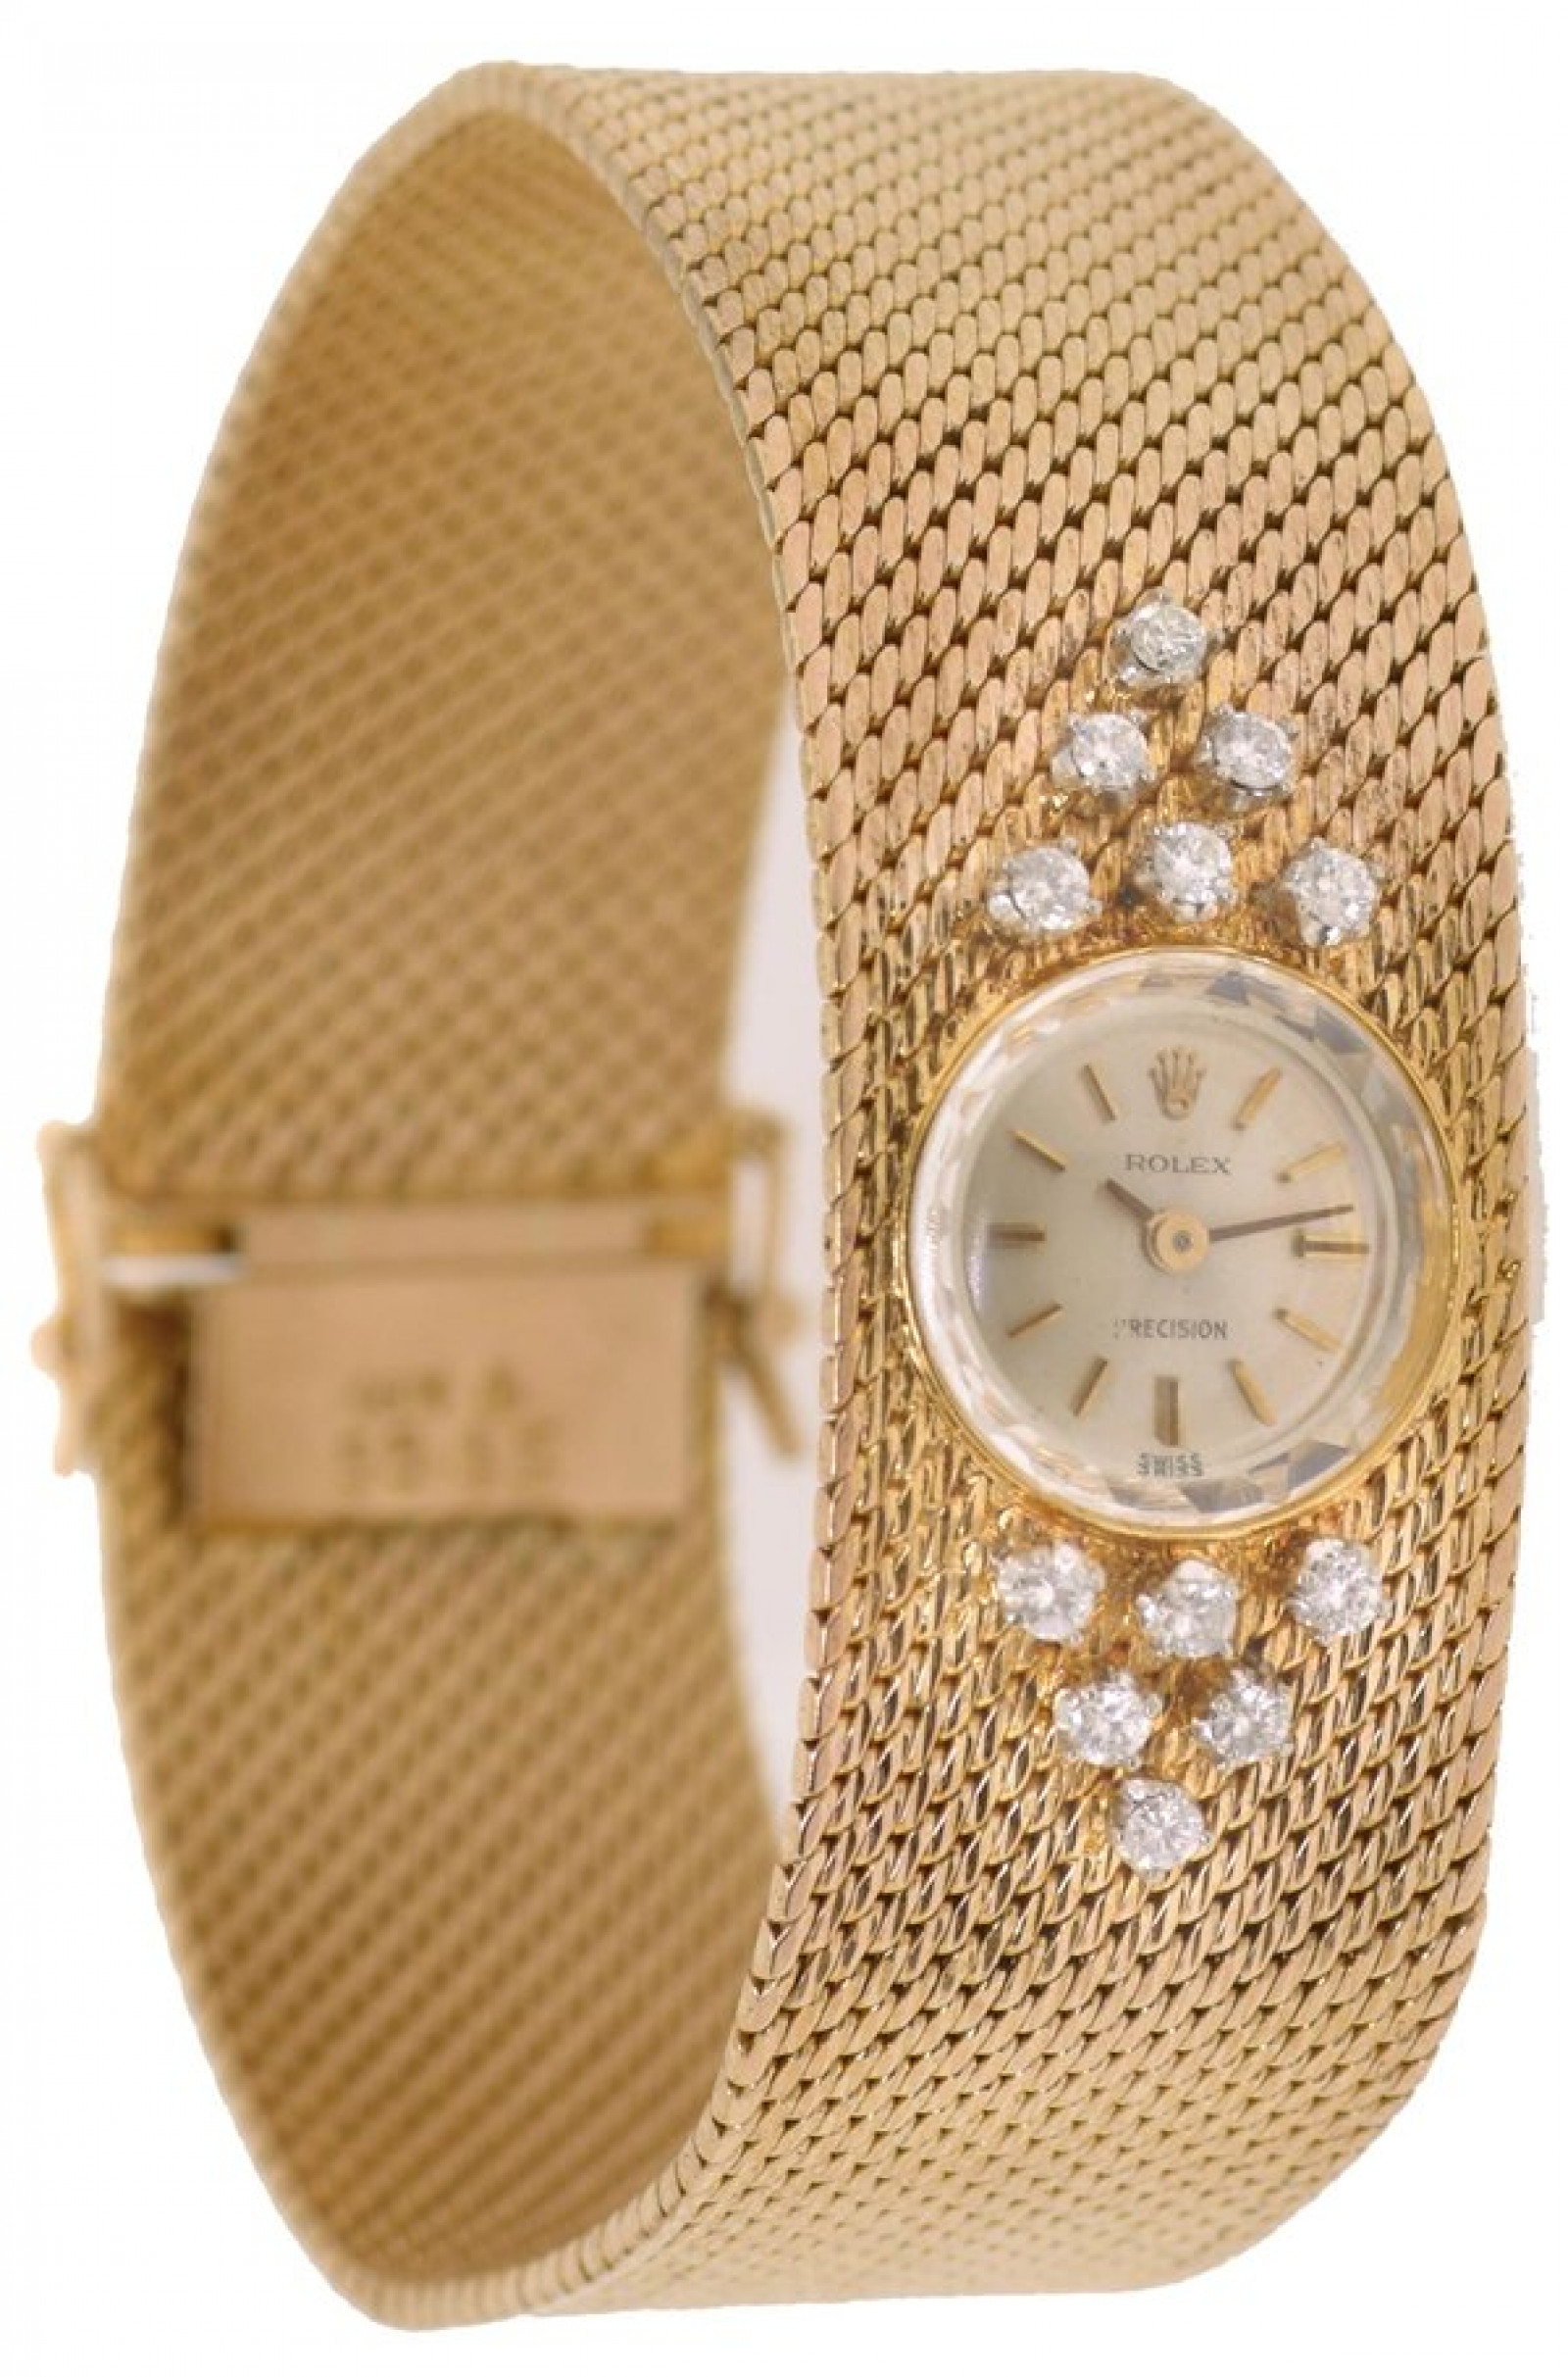 Vintage Rolex Precision 2604 Gold with Silver Dial